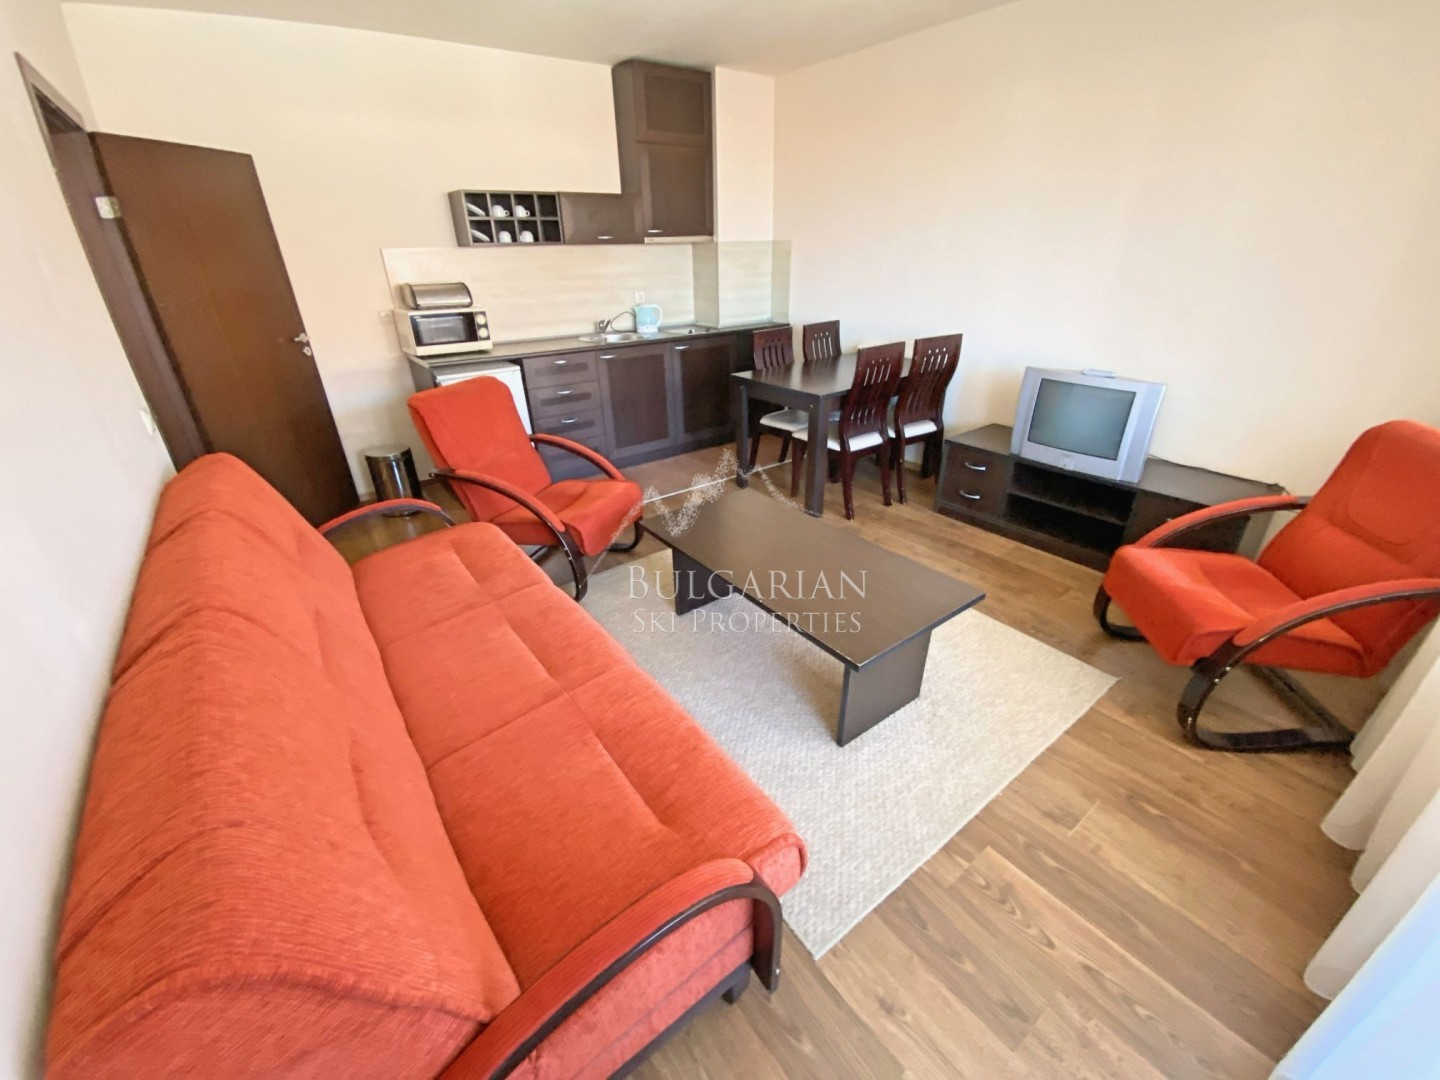 Bansko Royal Towers: one-bedroom apartment with nice view for sale